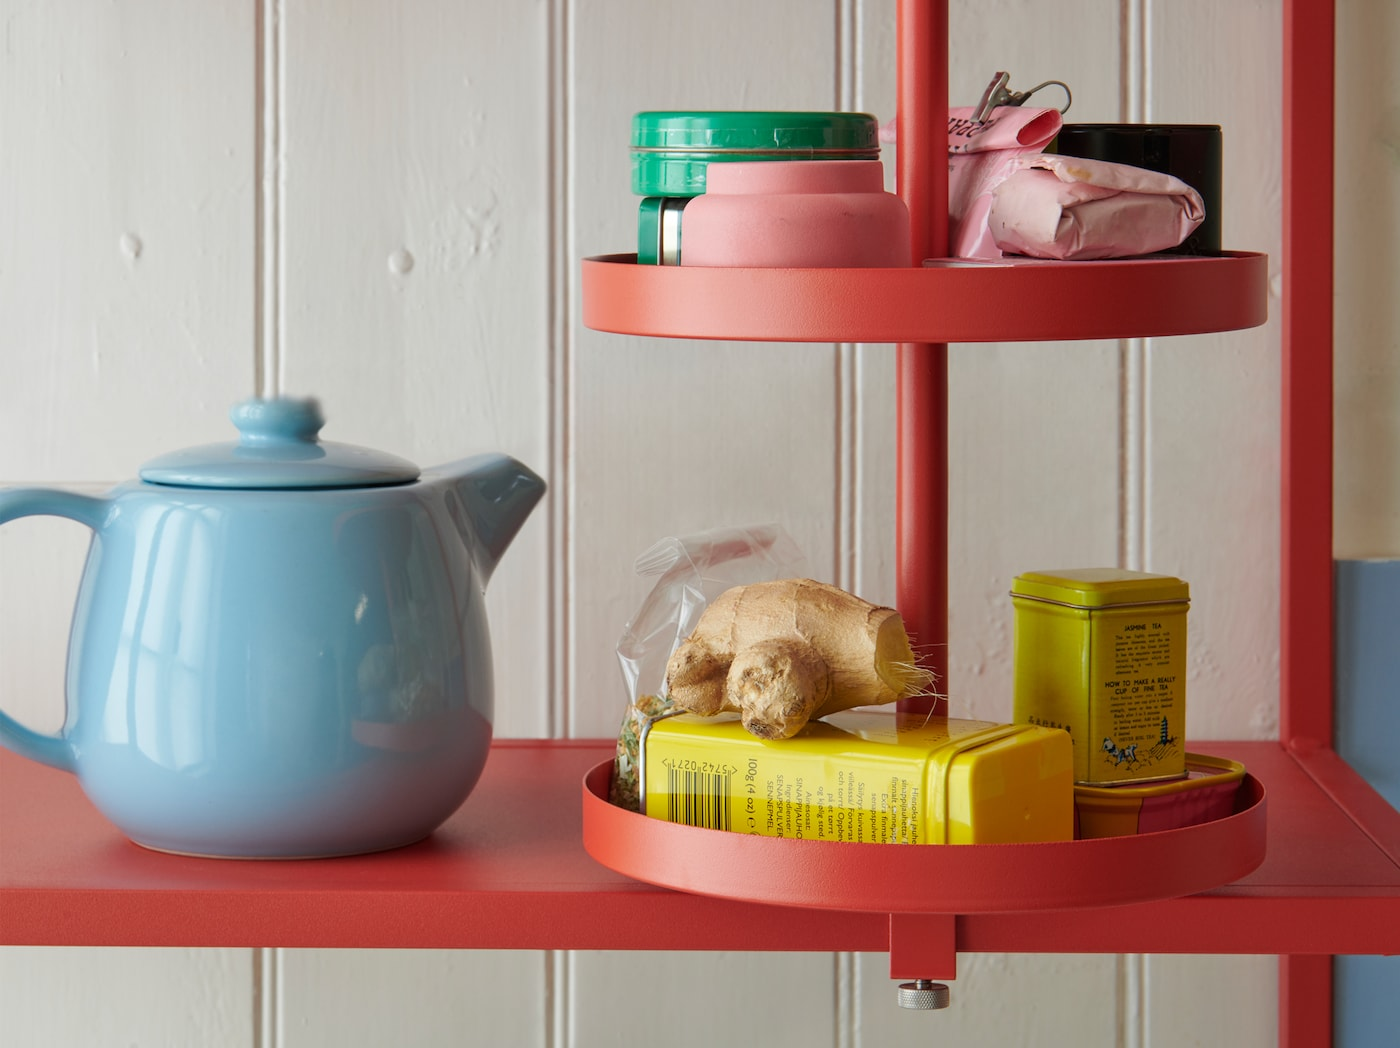 A close-up of the red-orange ENHET swivel shelf for the kitchen holding different tins and packages, as well as some ginger.